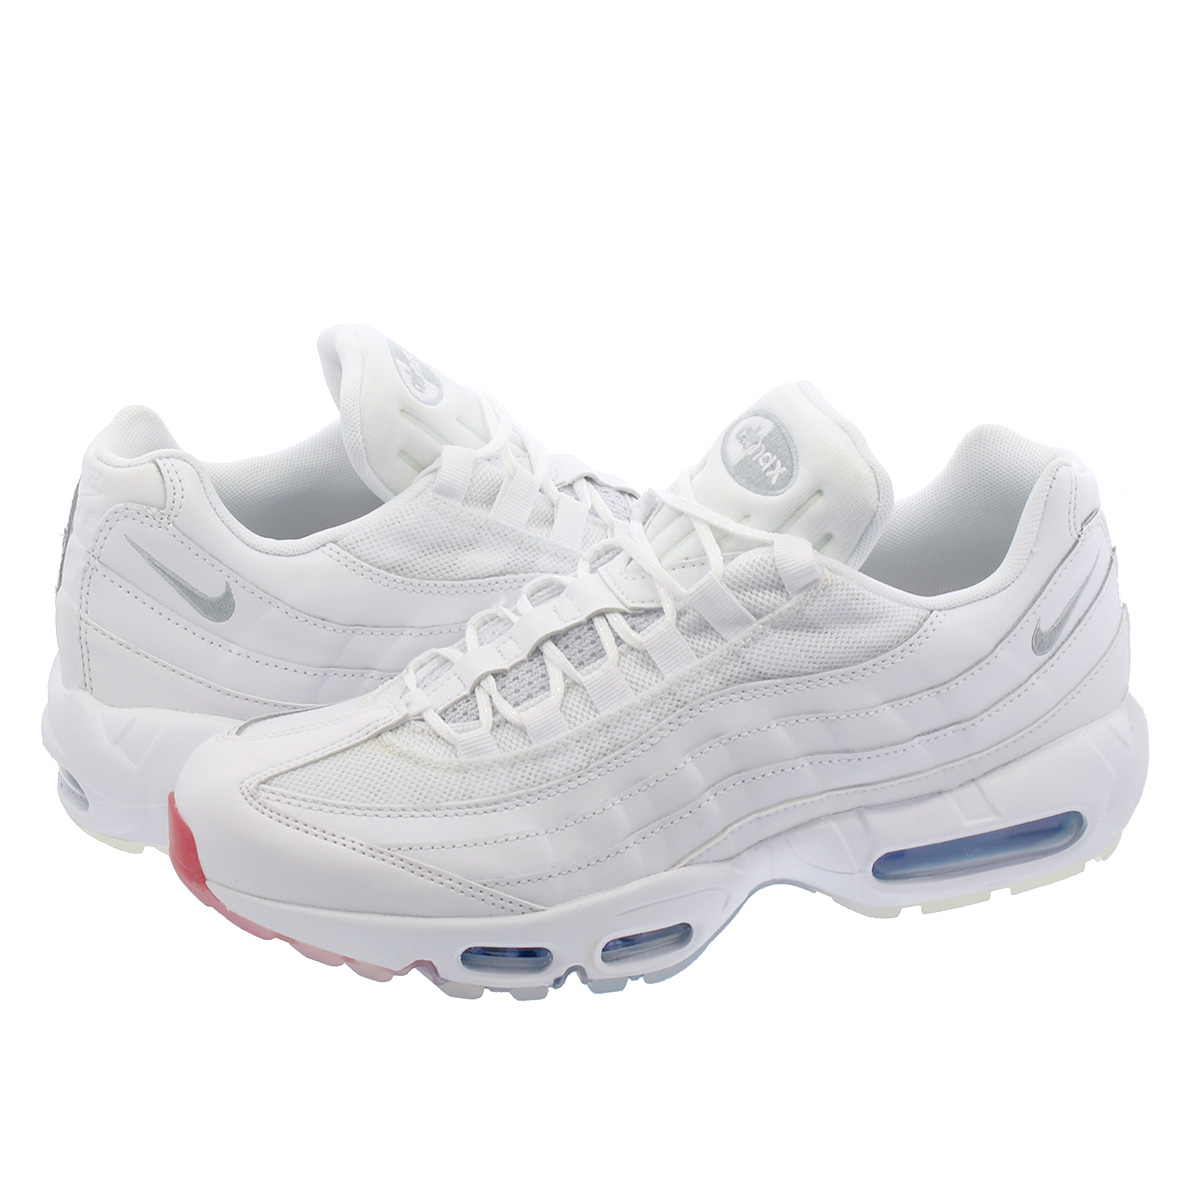 Nike Air Max 95 Nike AQ7981 100 whitephoto blue